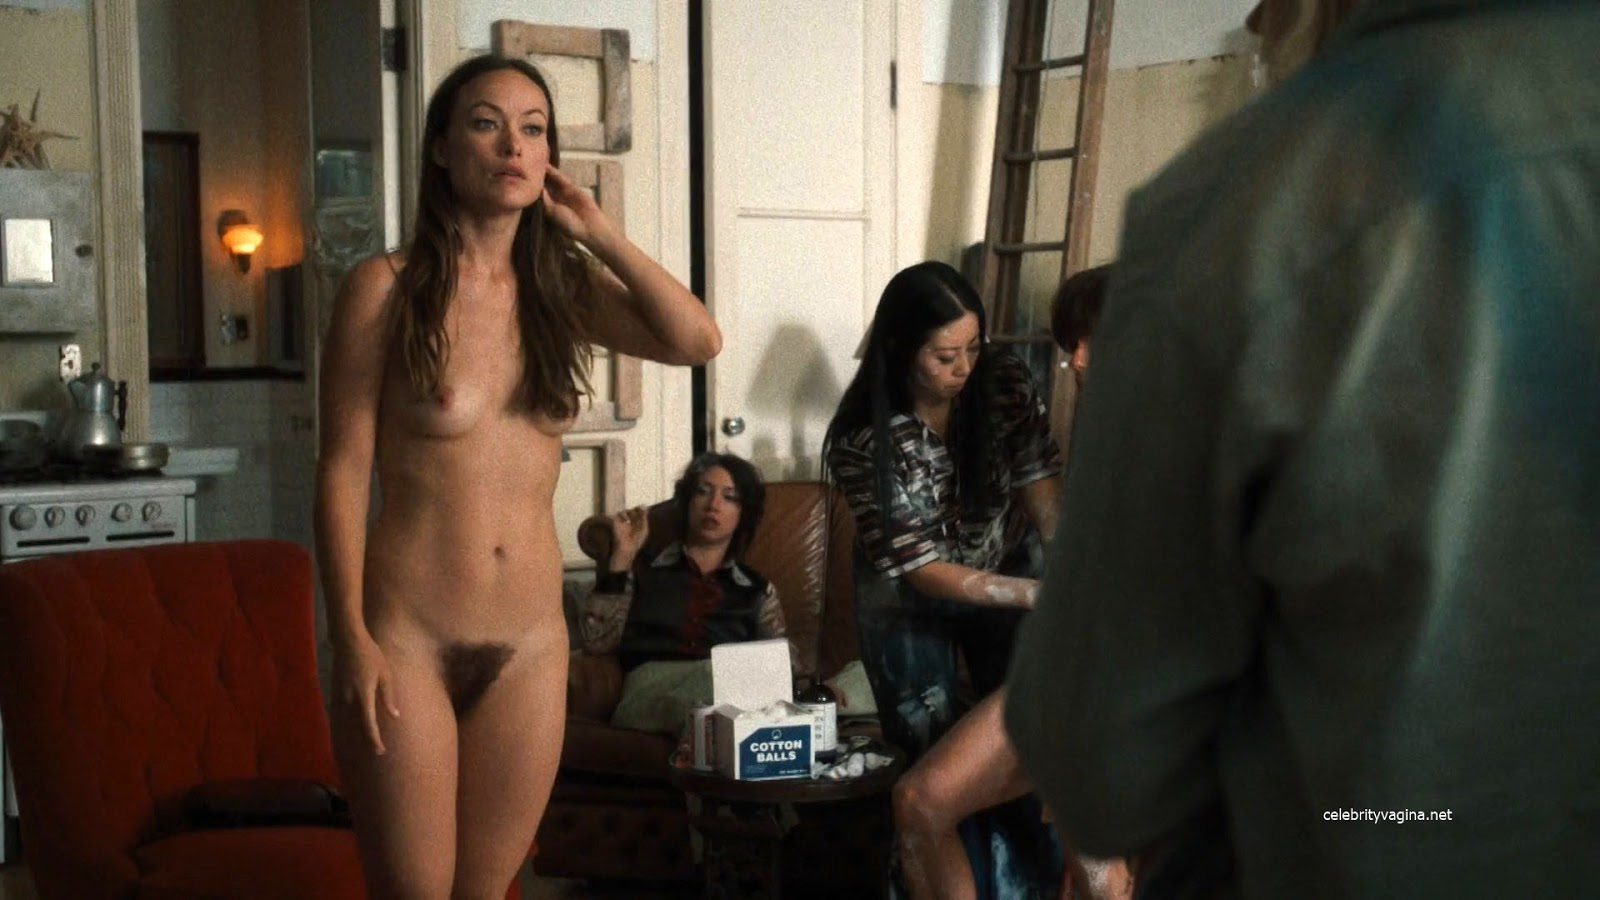 Olivia Wilde shows hairy pussy in Vinyl